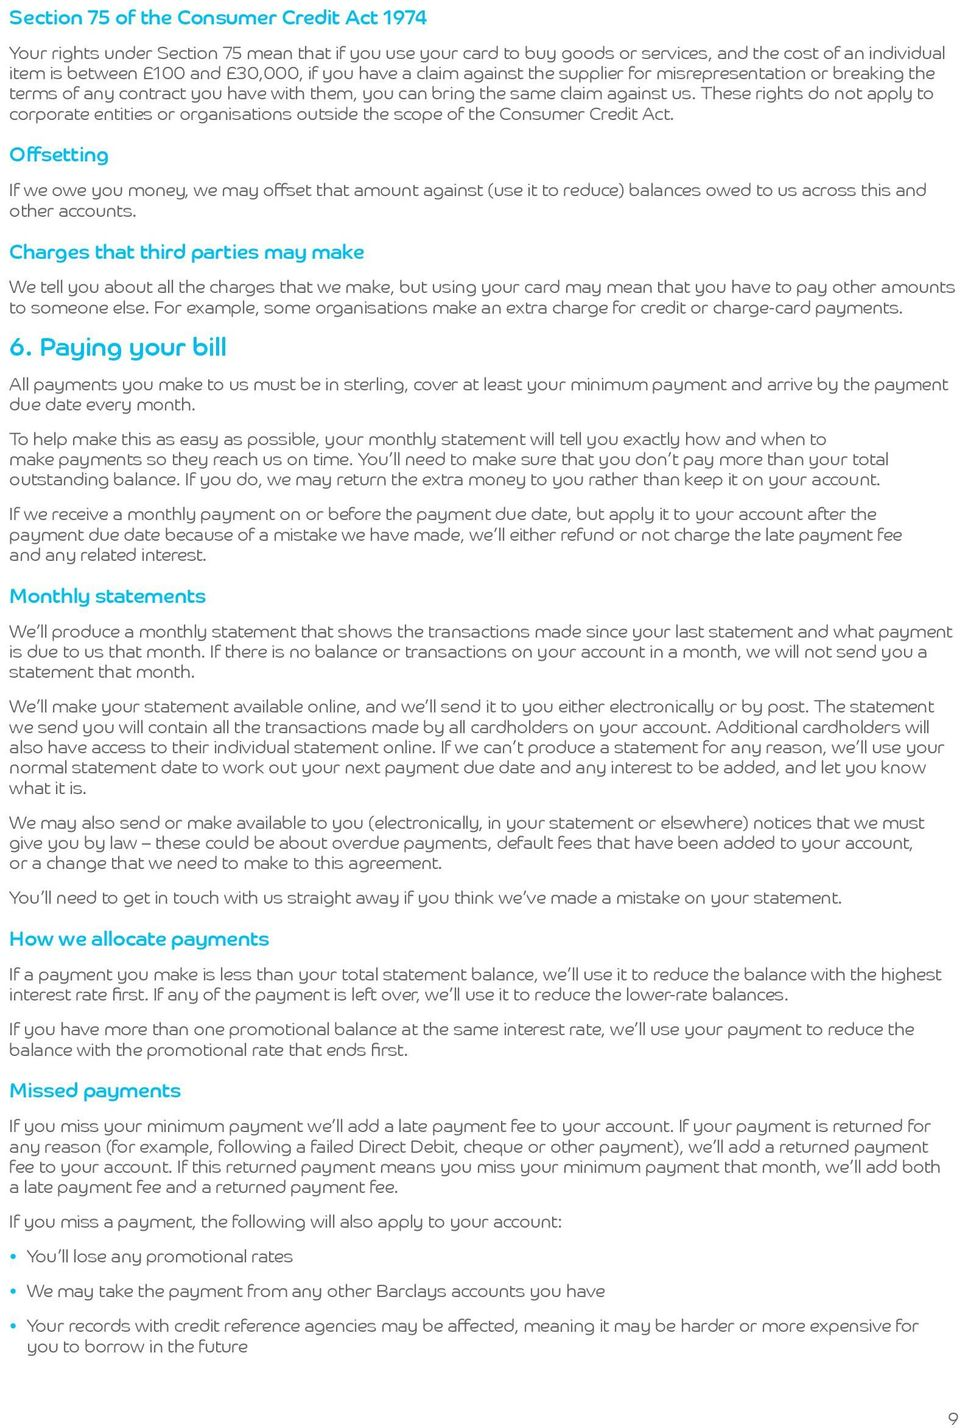 Barclaycard Business Credit Card Terms and Conditions - PDF